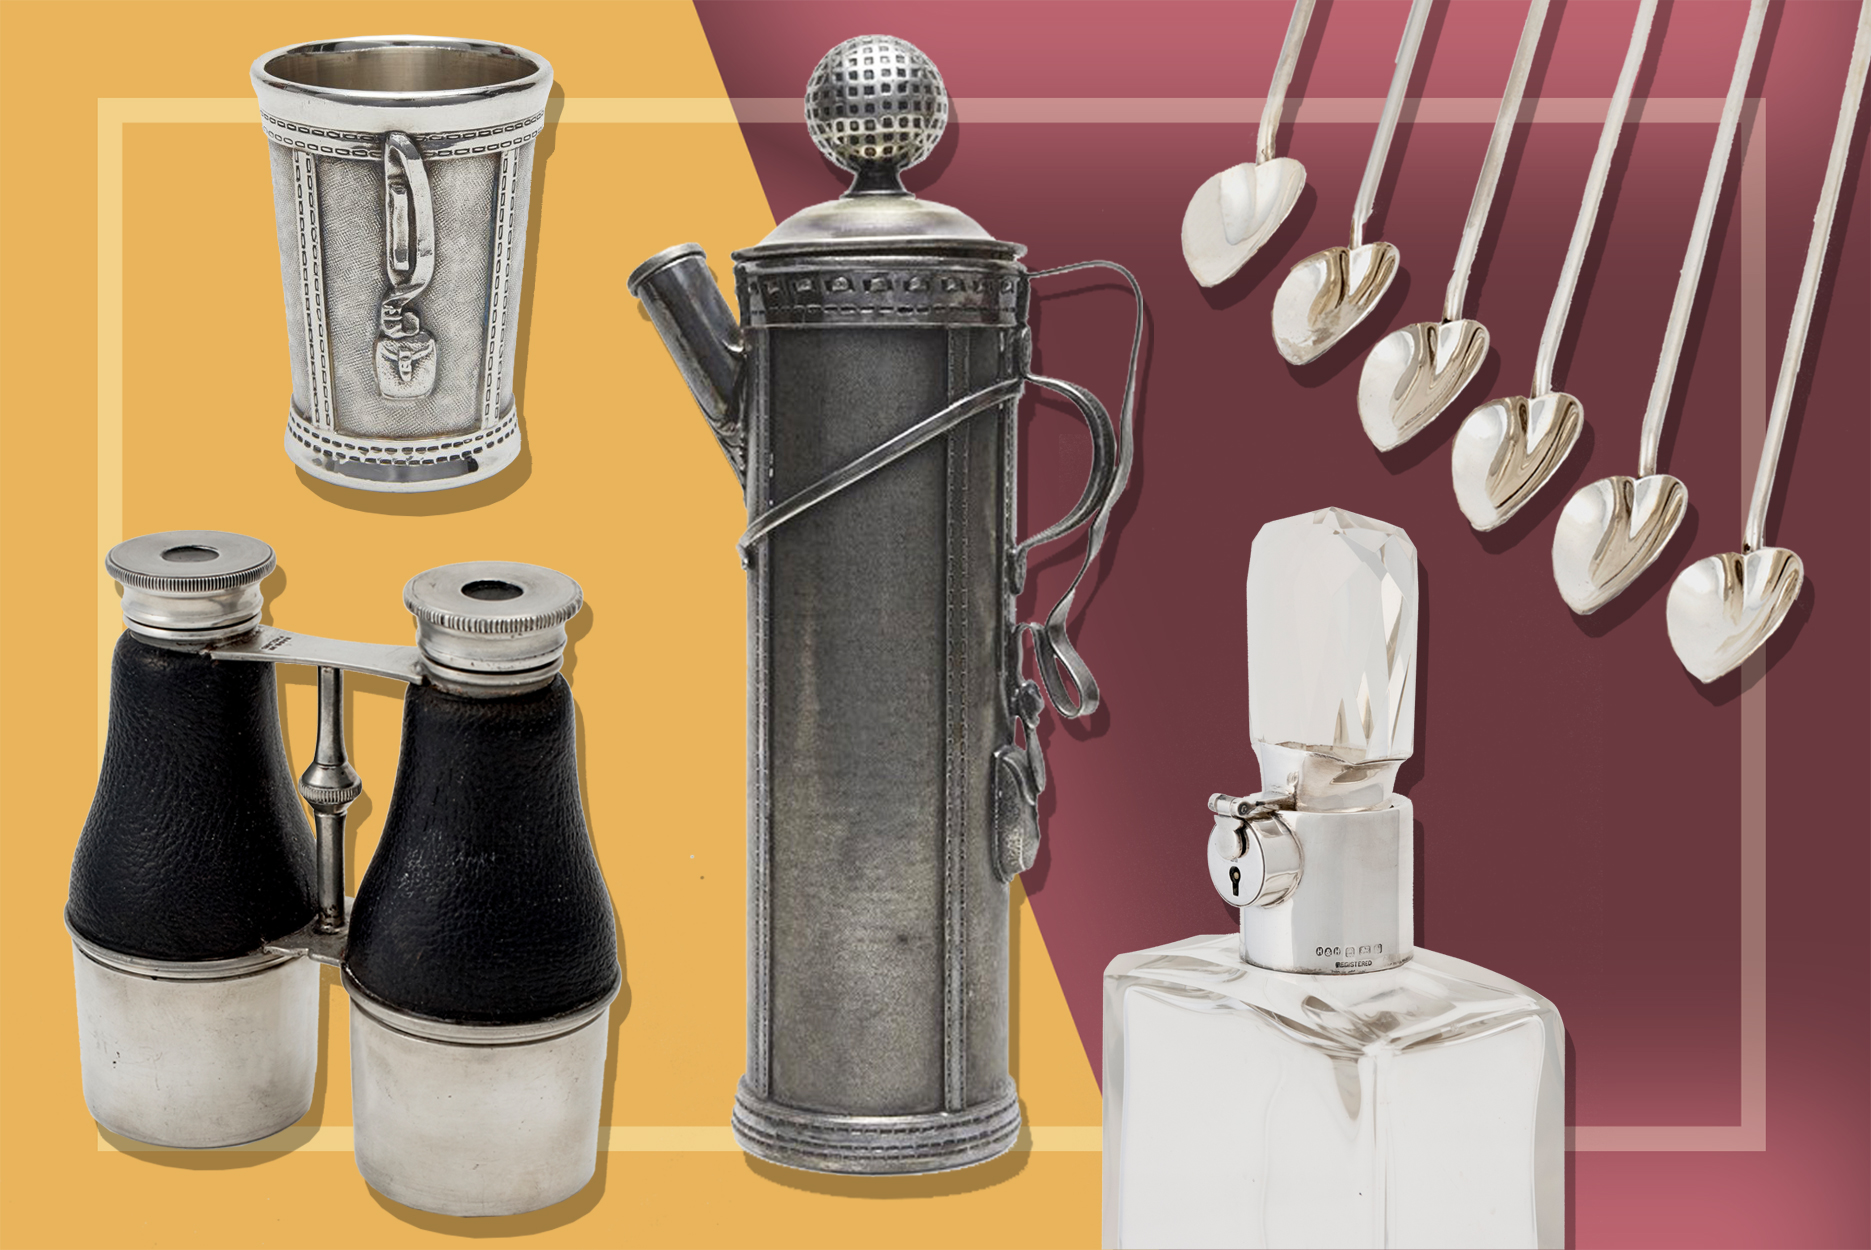 Sotheby's Prohibition Bar Ware Auction